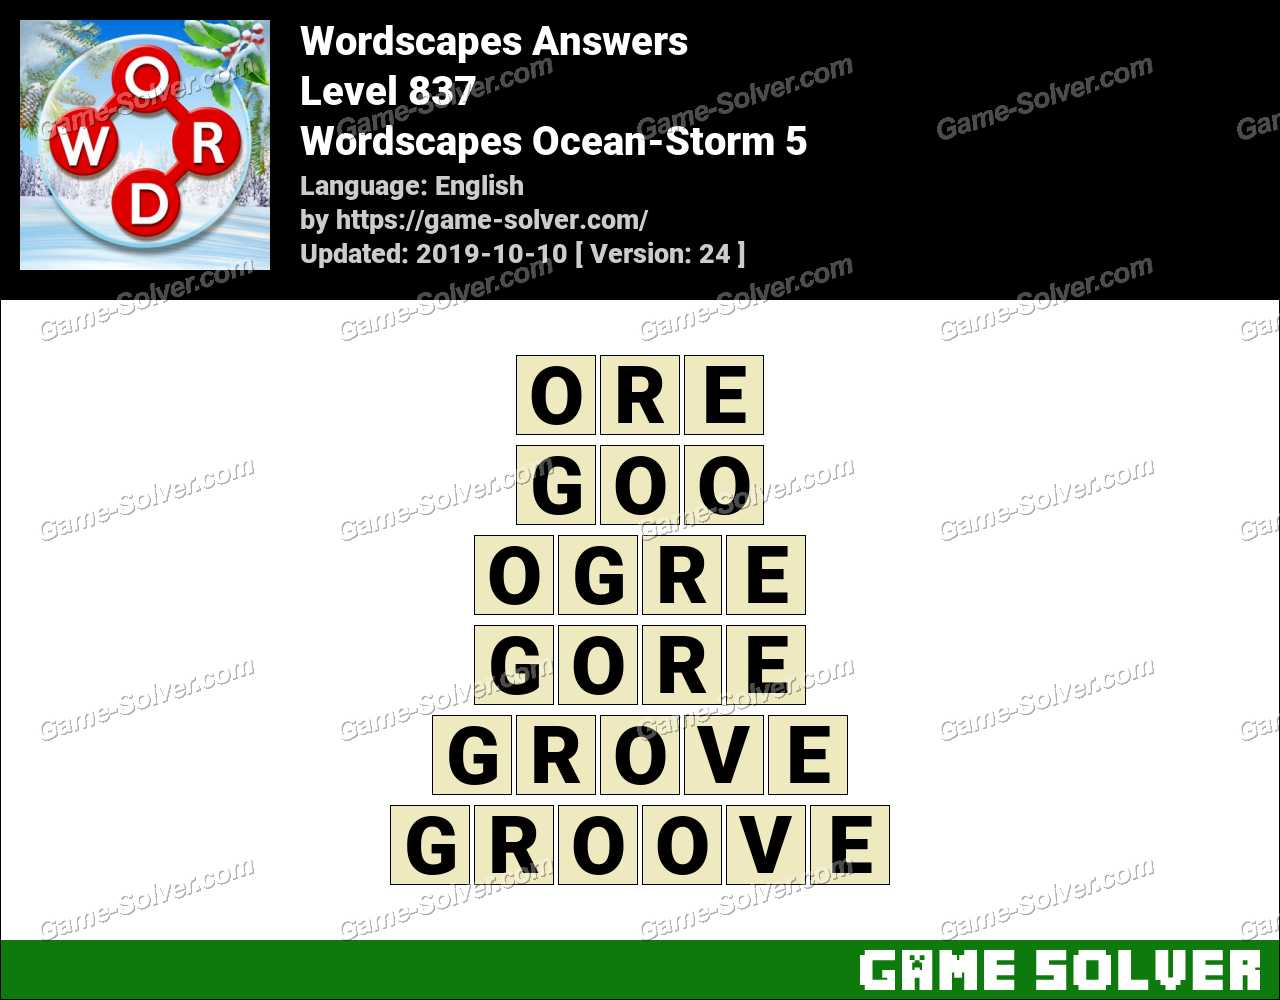 Wordscapes Ocean-Storm 5 Answers